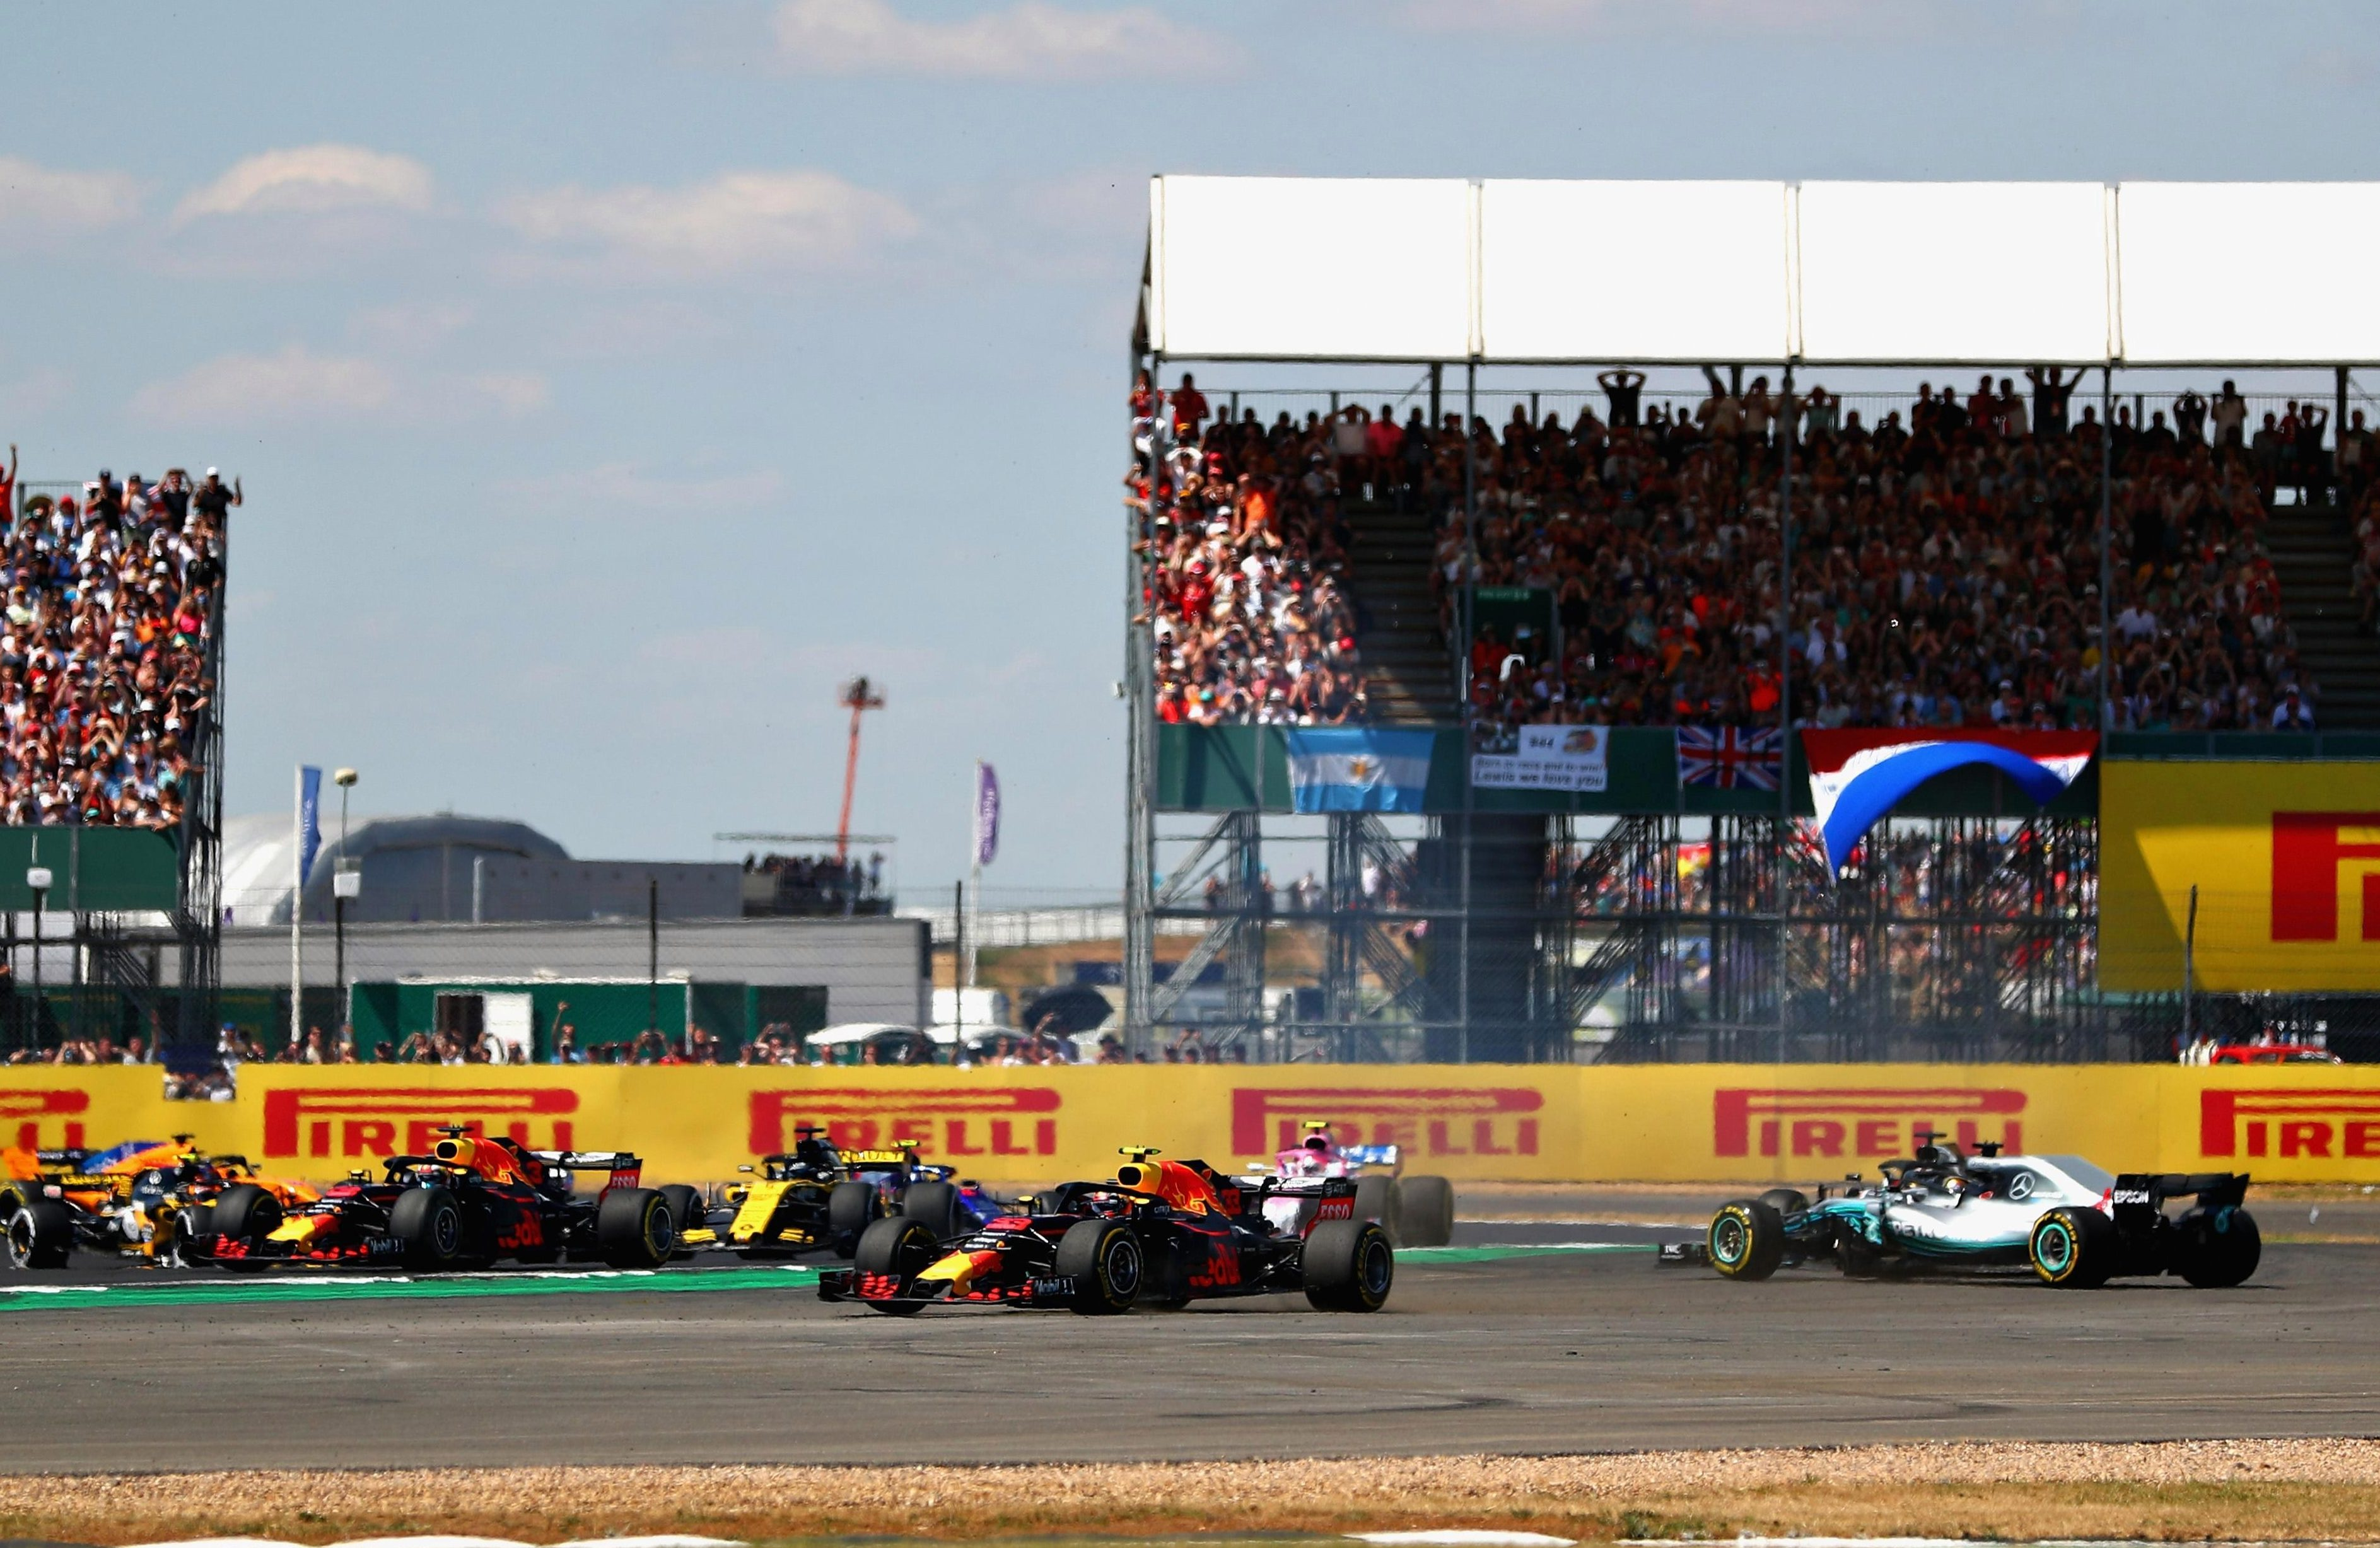 Sky have agreed a content partnership with Channel 4 which will allow the race at Silverstone to be screened on terrestrial TV